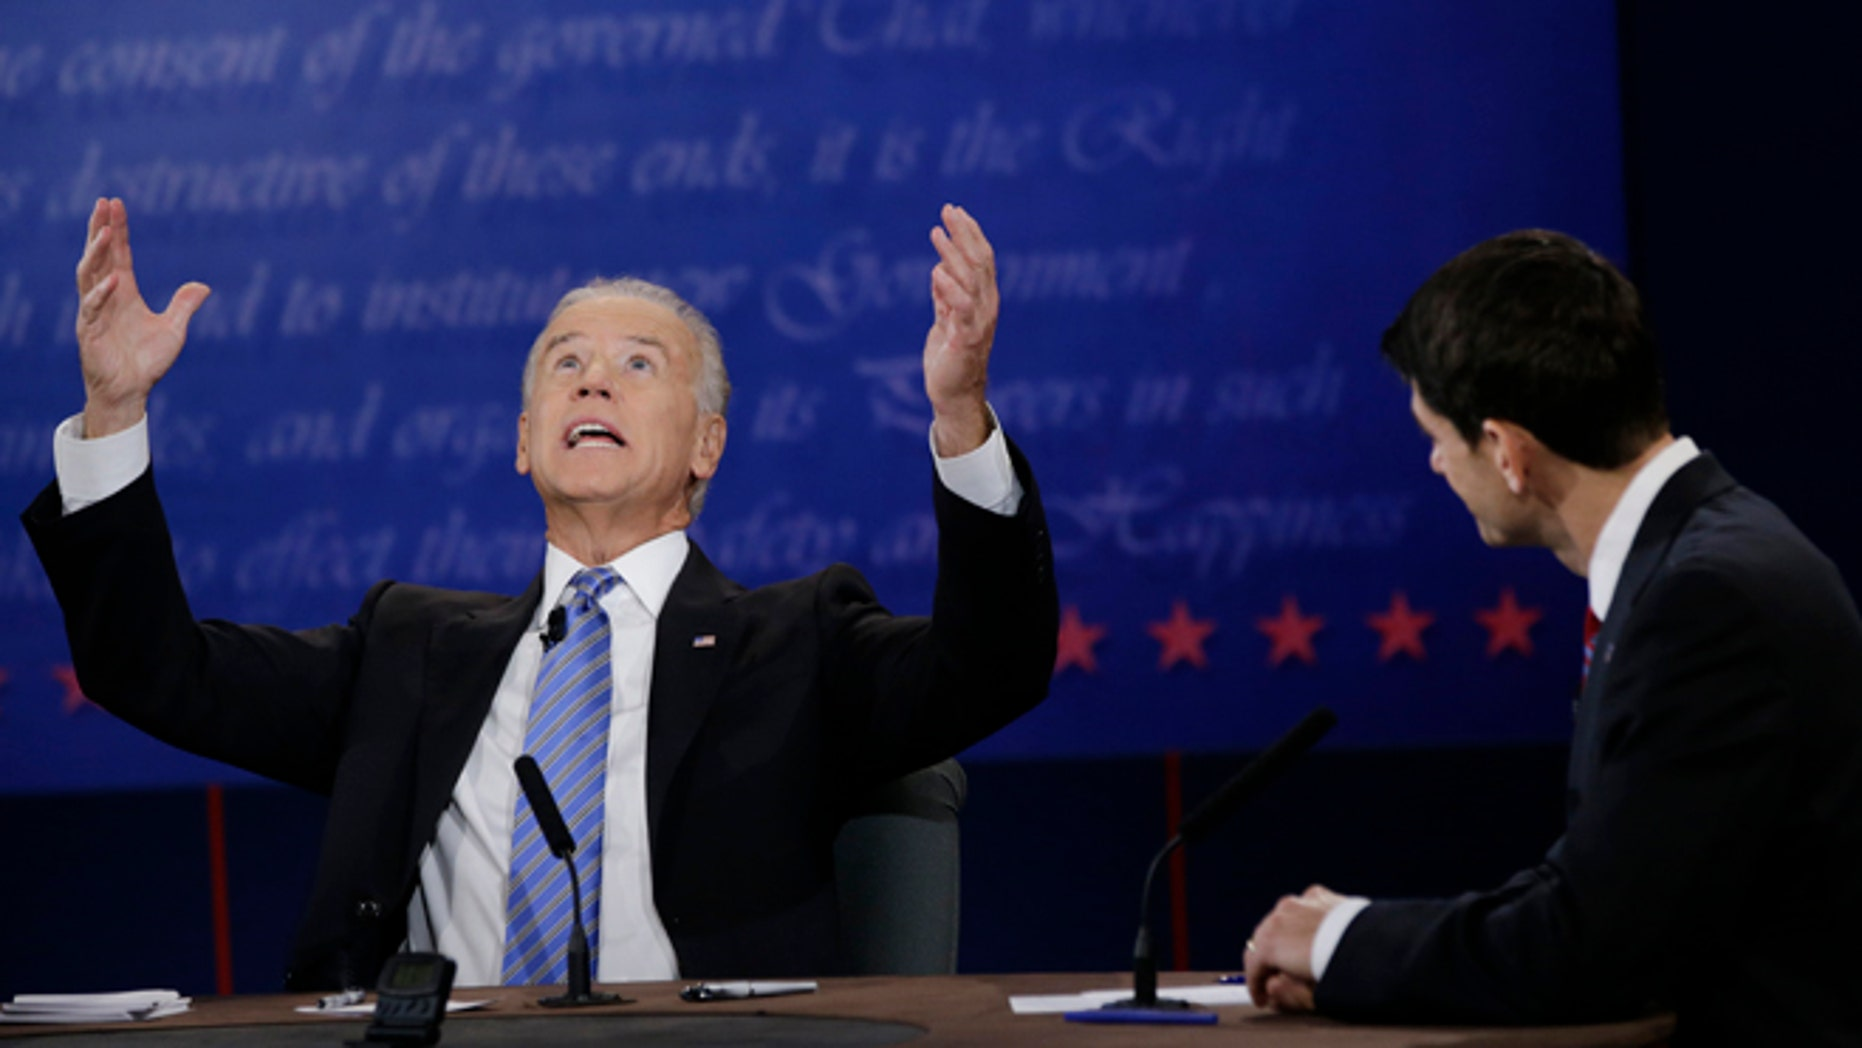 Oct. 11, 2012: Republican vice presidential nominee Rep. Paul Ryan, of Wisconsin, right, watches as Vice President Joe Biden, speaks during the vice presidential debate at Centre College in Danville, Ky.